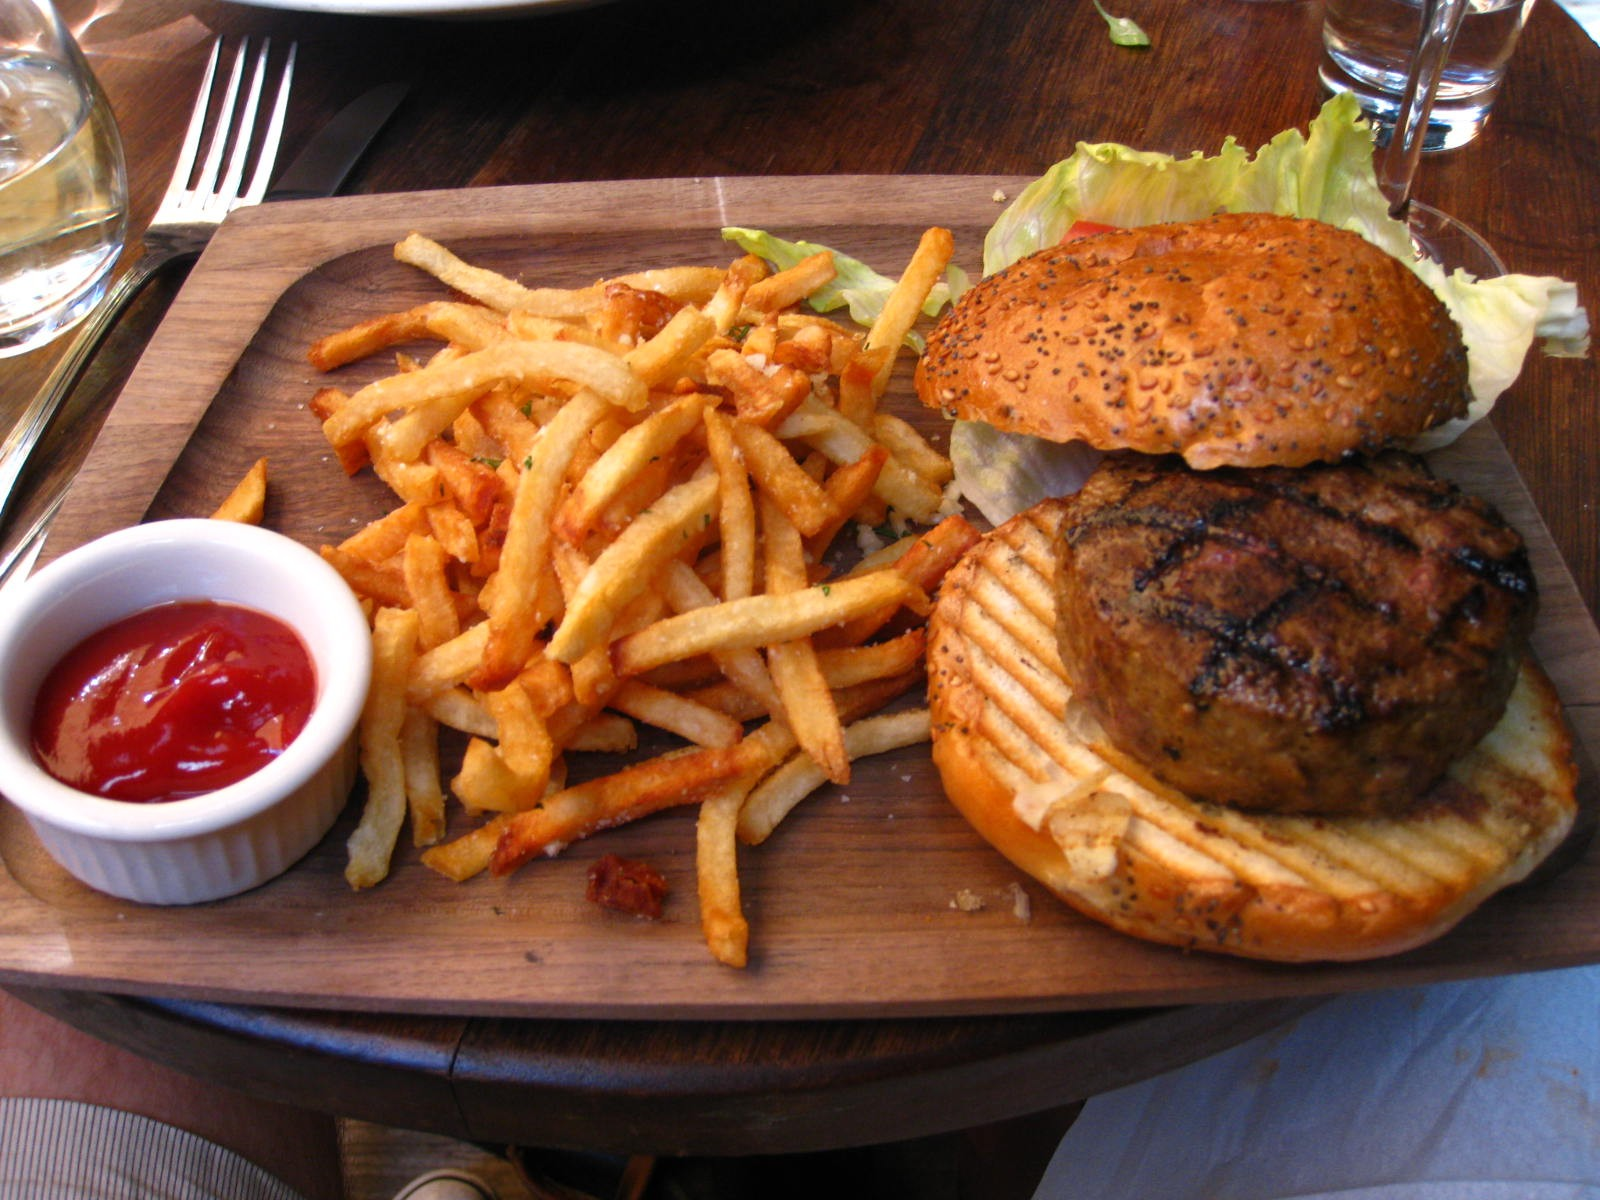 General 1600x1200 food French fries burger fast food